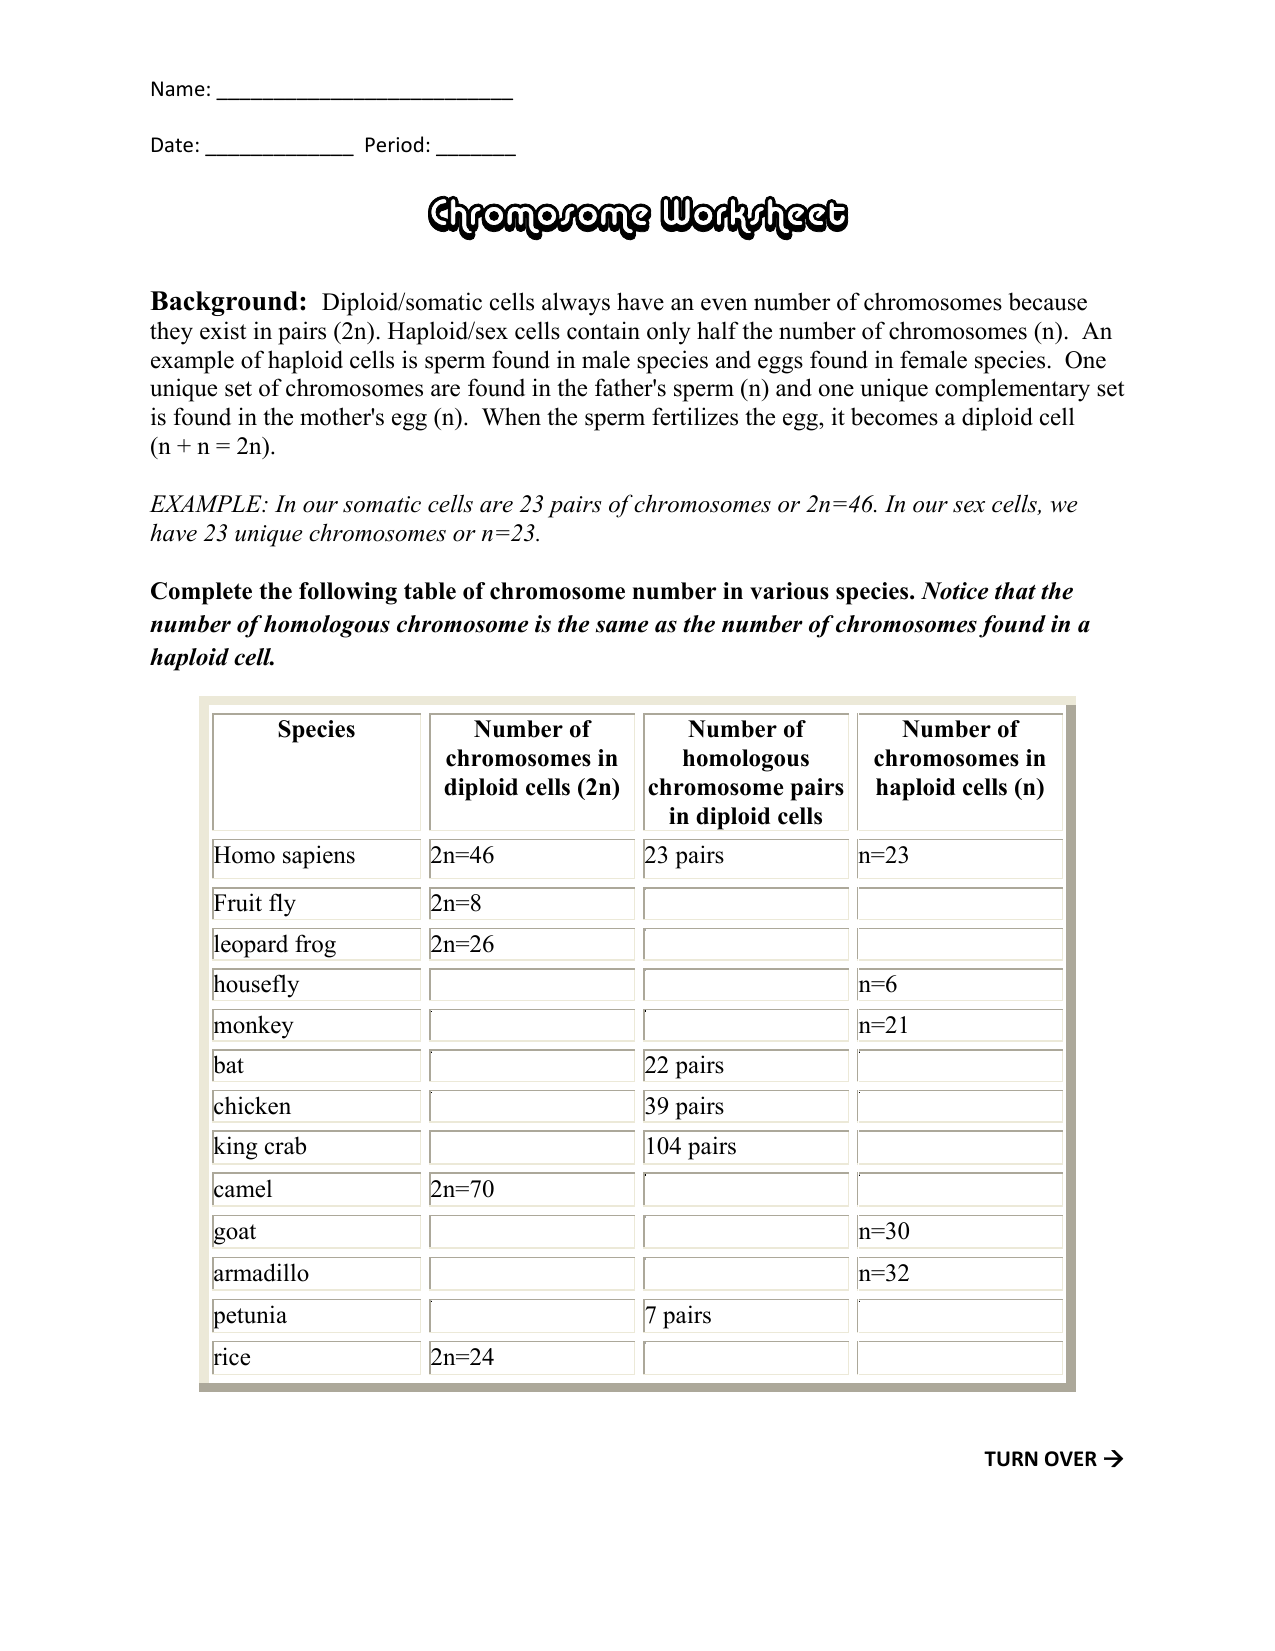 Worksheets Number Of Chromosomes Worksheet chromosome worksheet 008368081 1 bb6b7acd73c682667454c071675b3d67 png